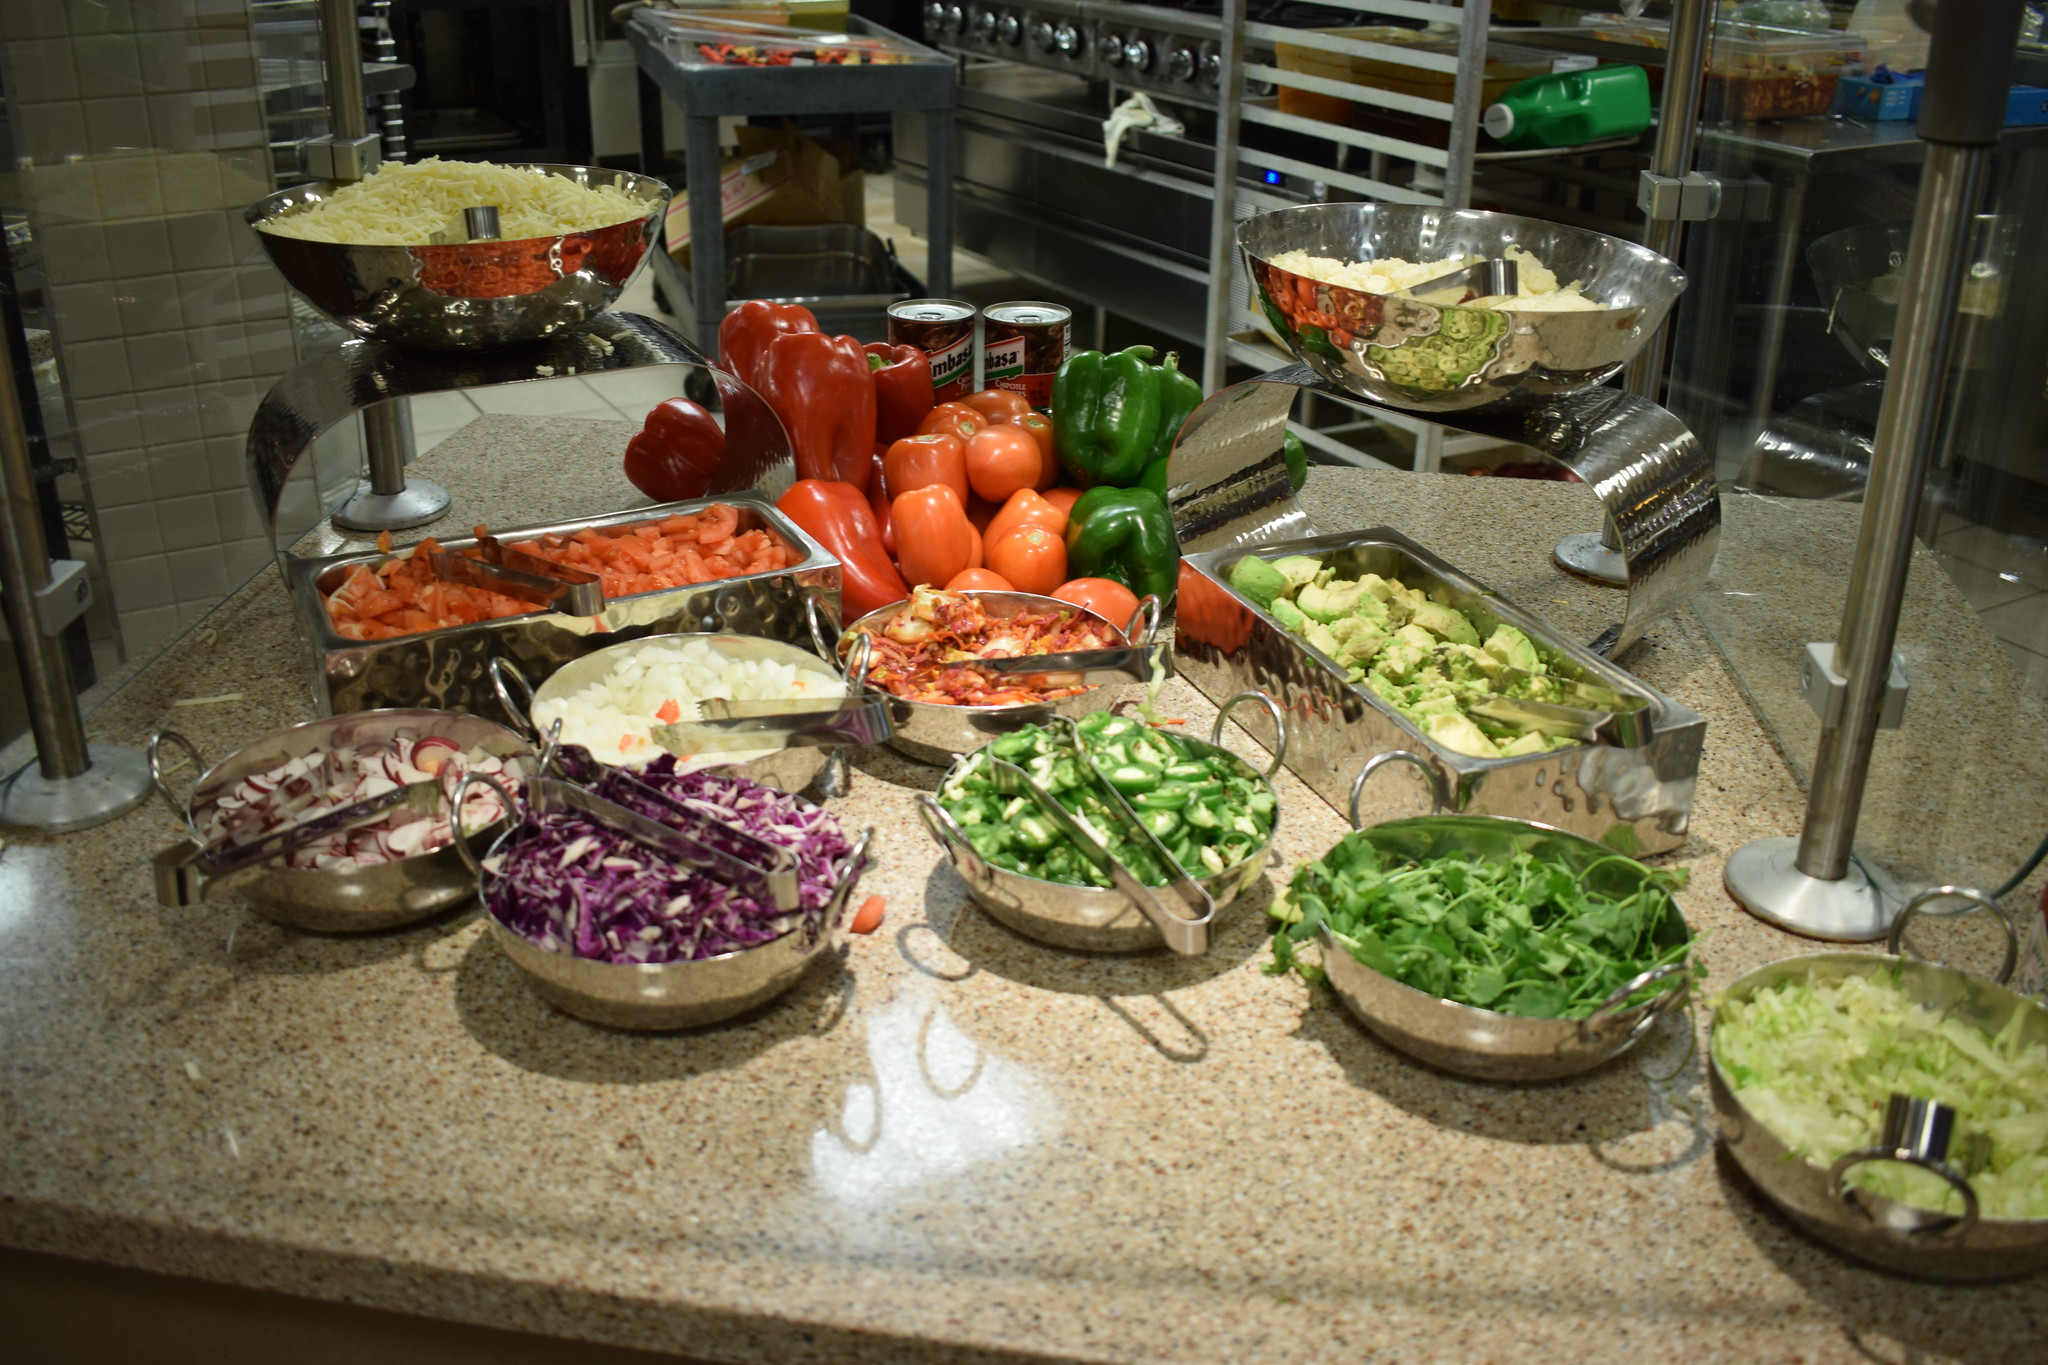 Vegetables on display at Springfield College dining hall